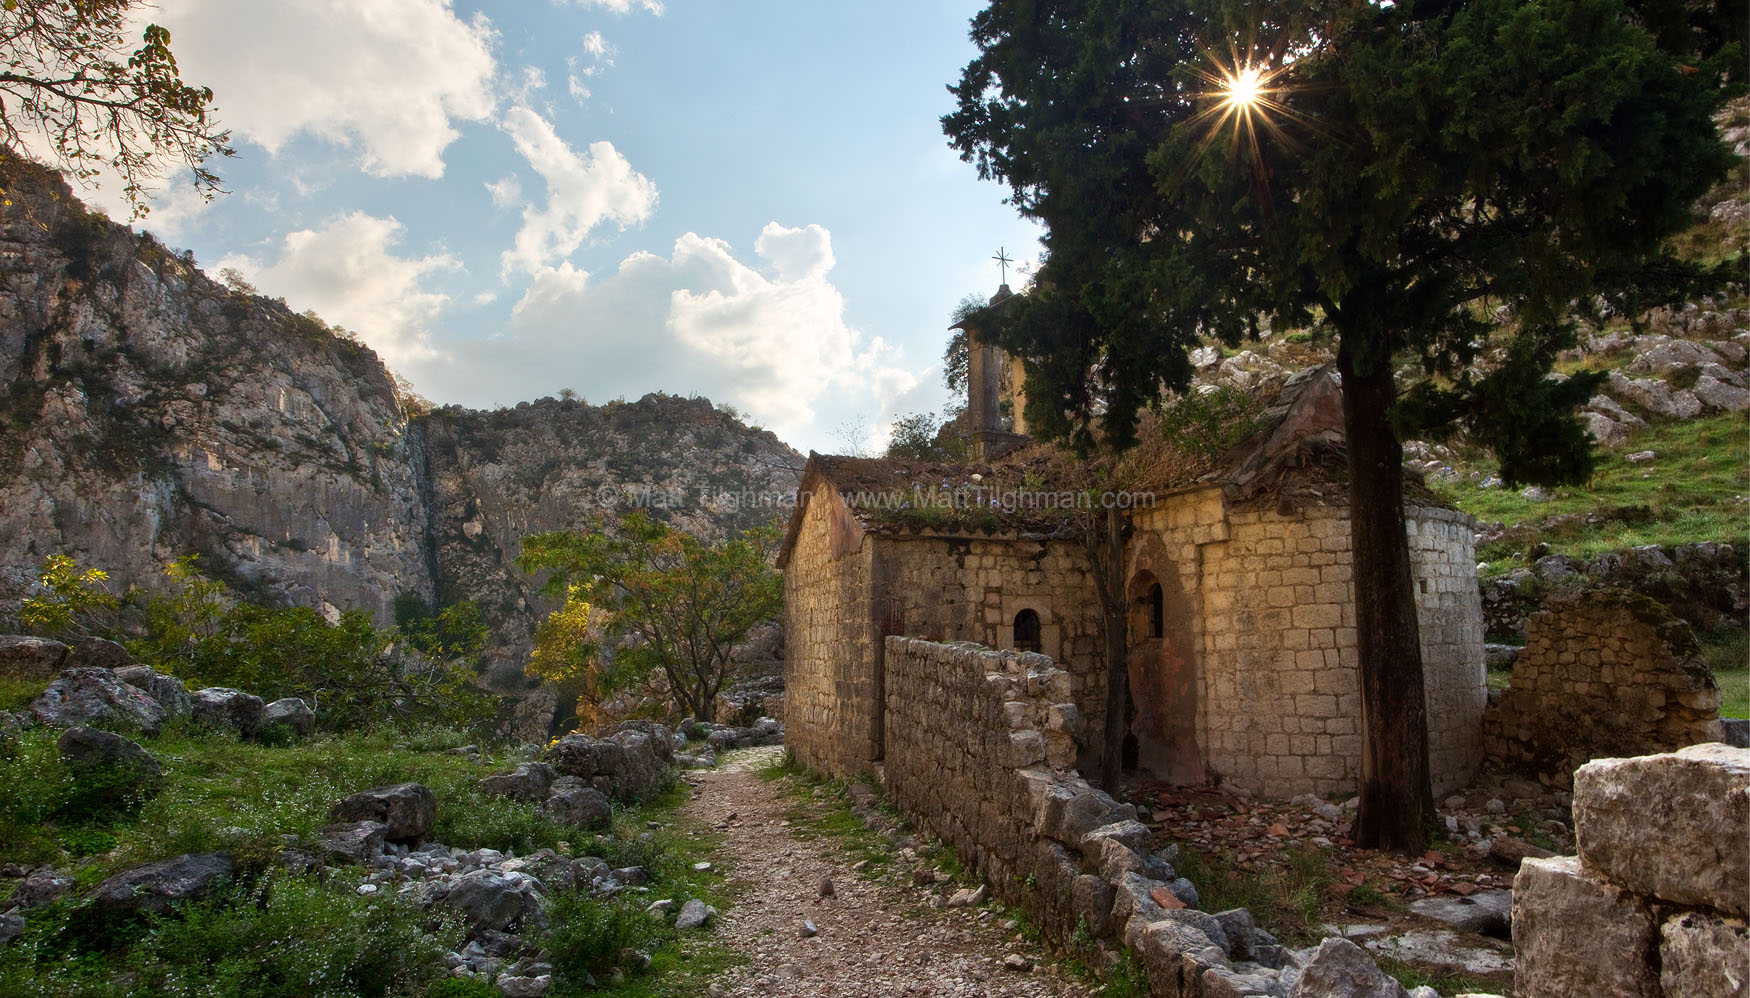 Fine art stock landscape photograph from Kotor, Montenegro. These beautiful church ruins can be found in the mountains just outside the St John's Fortress.